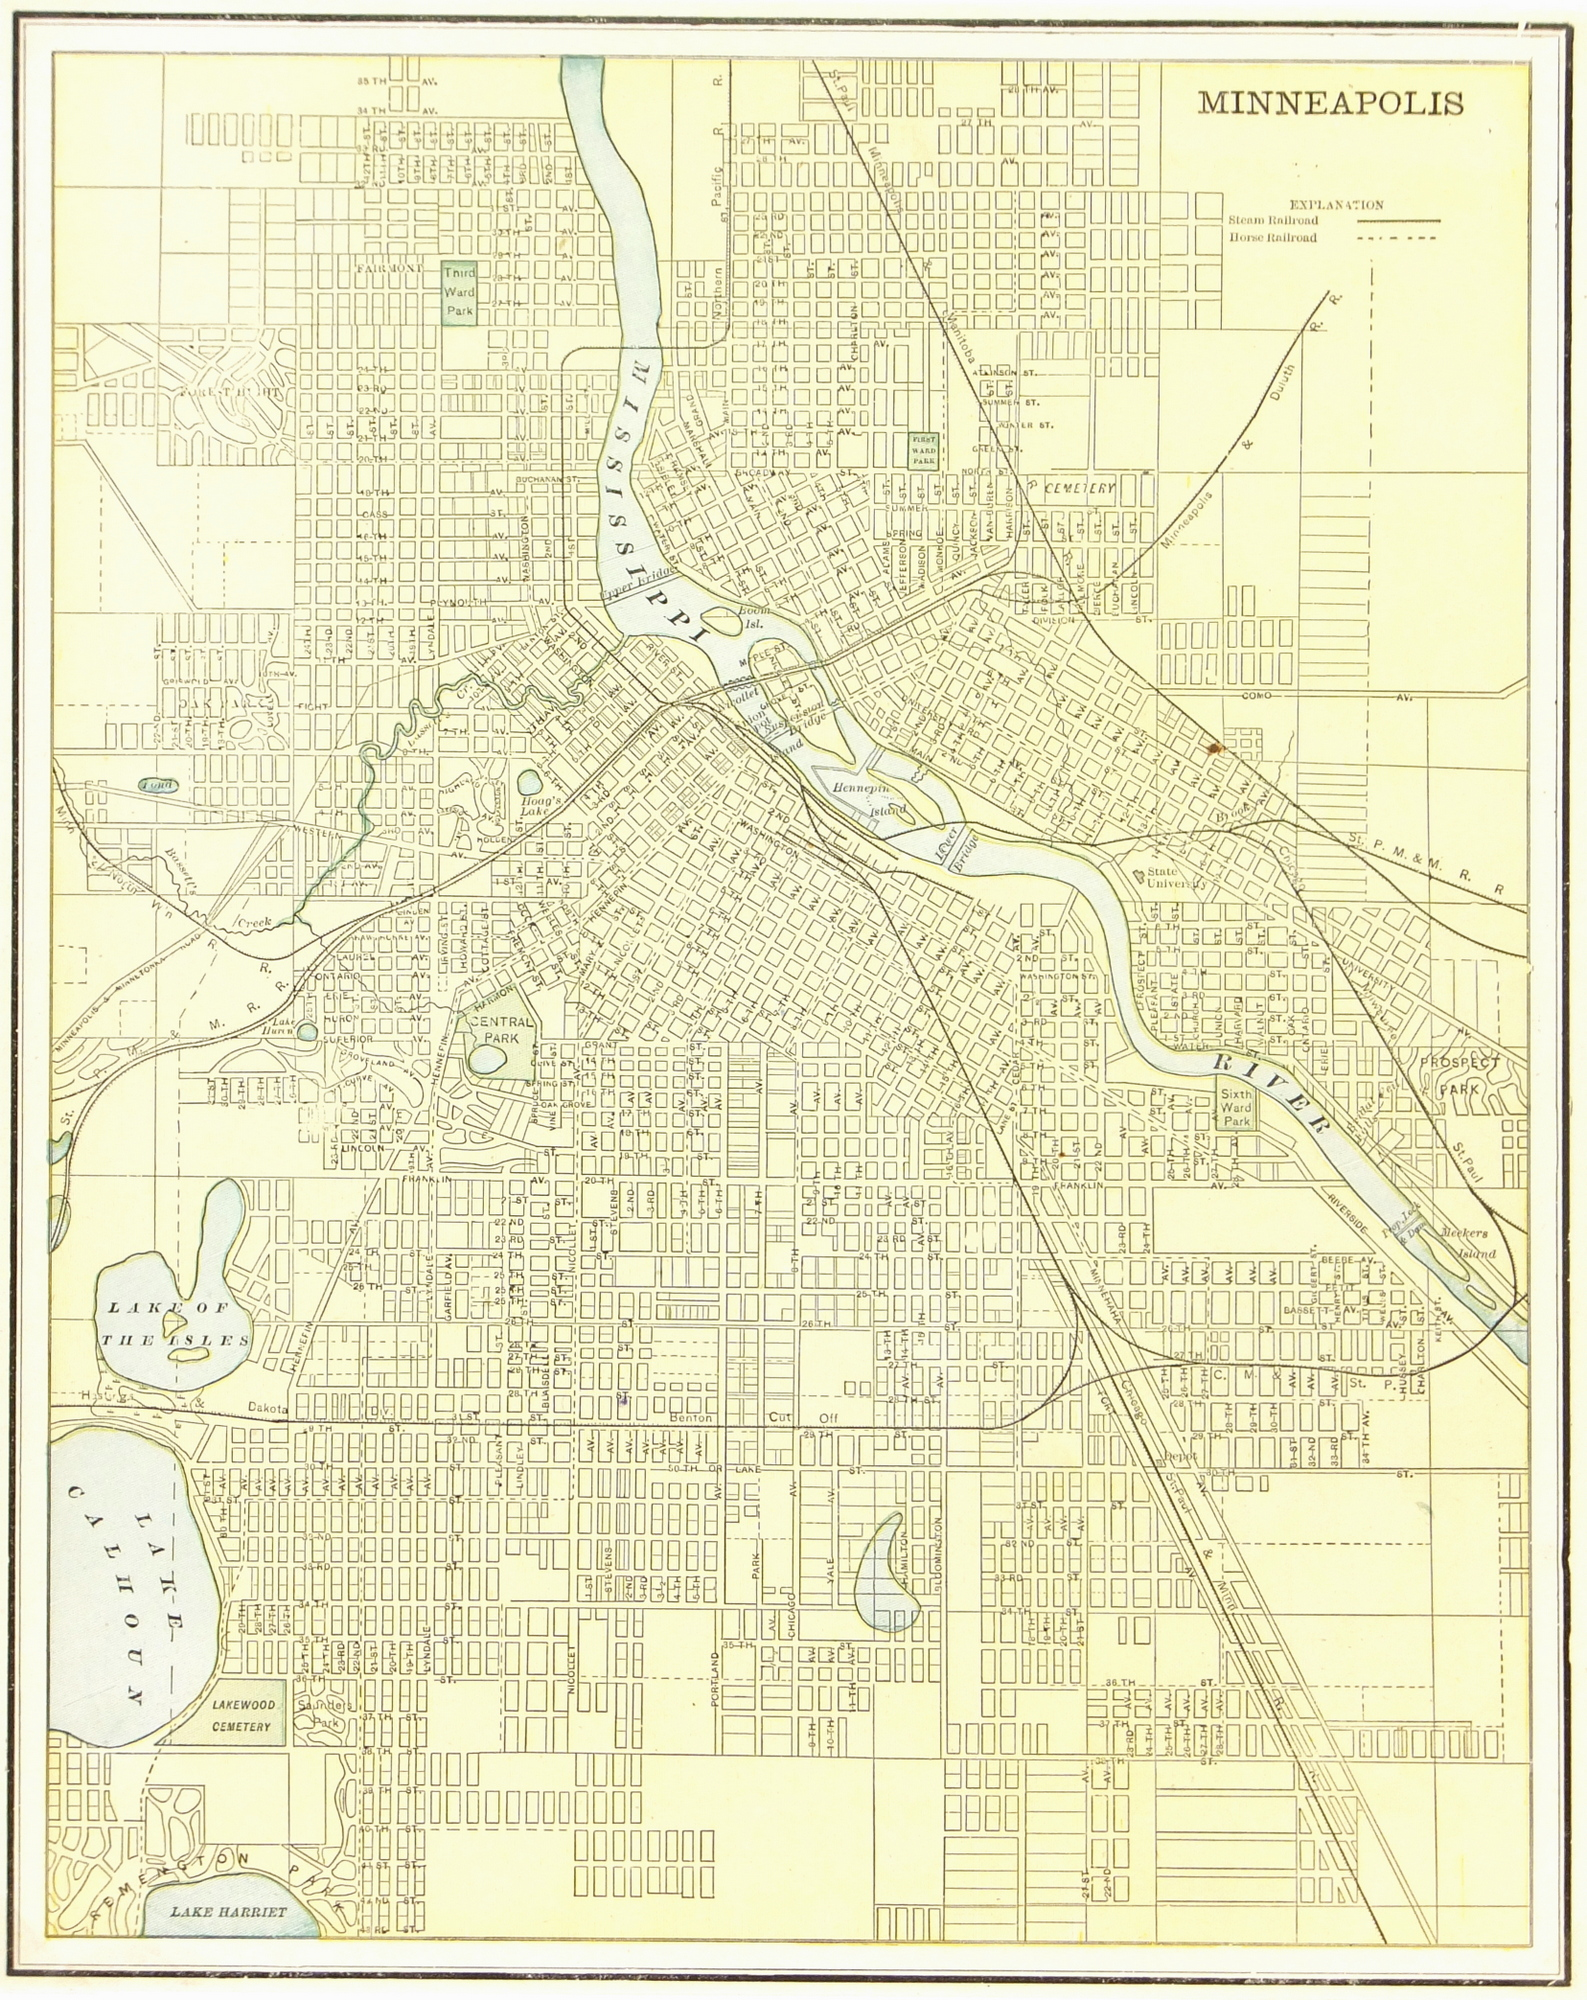 Minneapolis, 1889-main-7647K